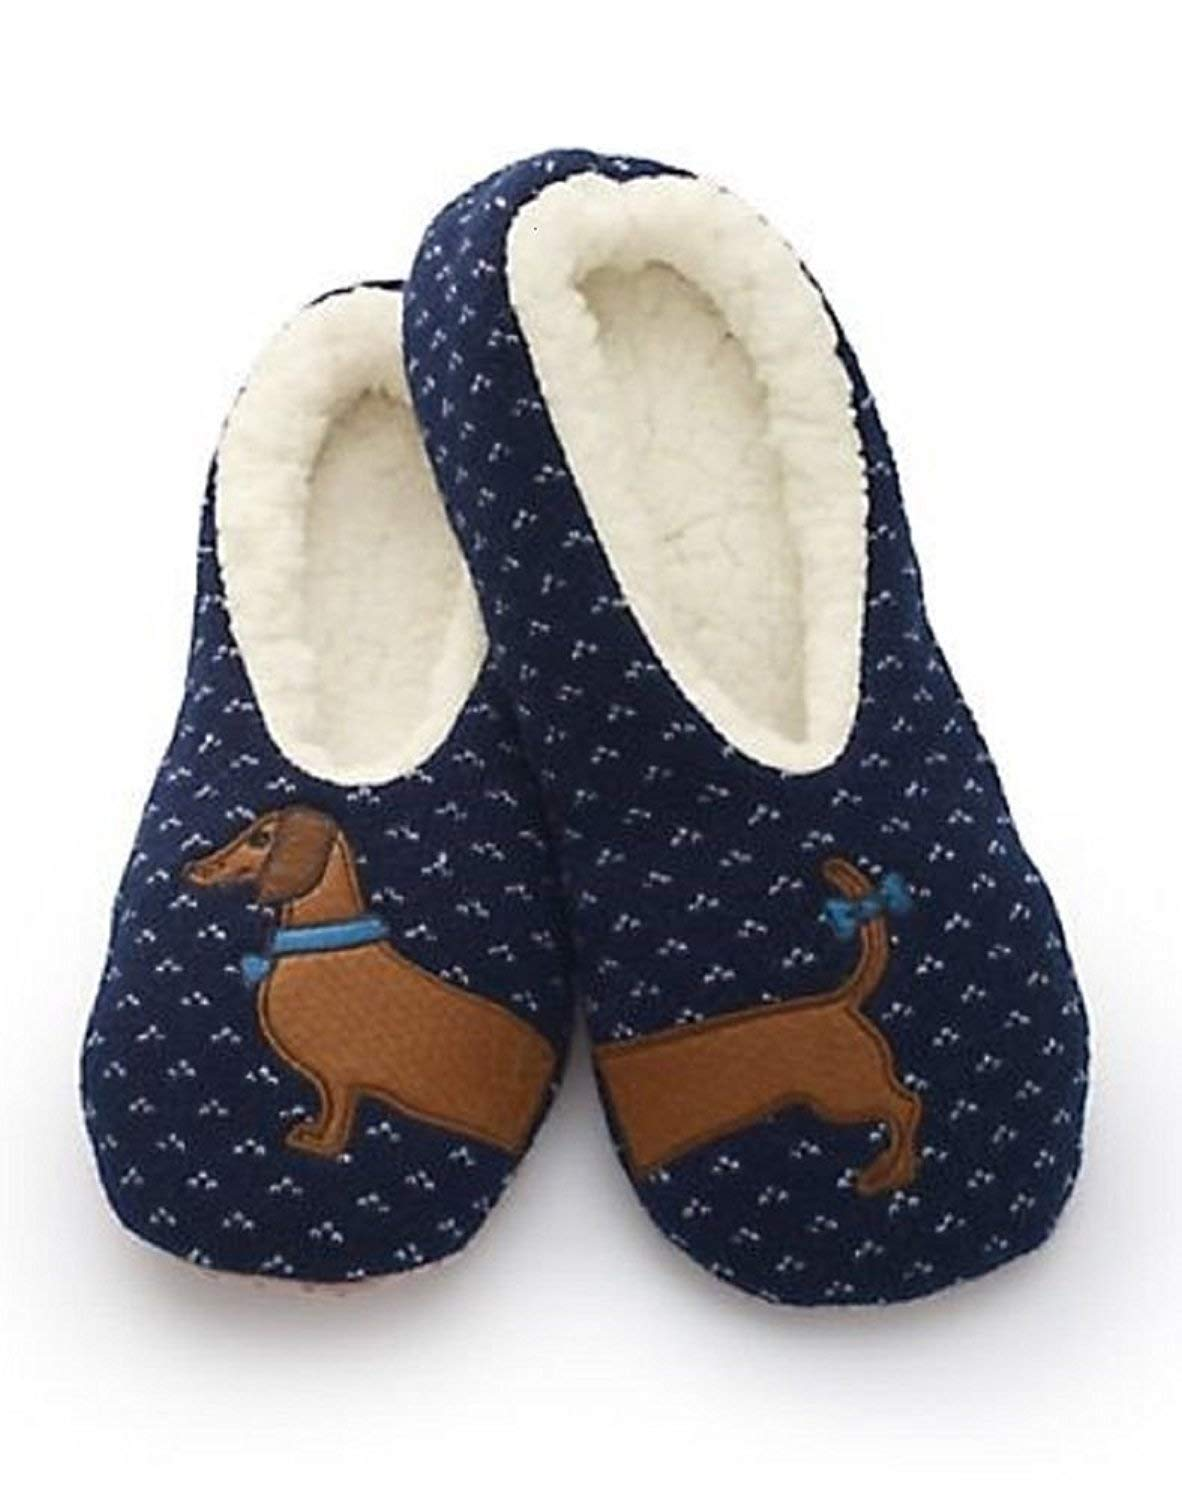 The Big Discount Sherpa Womens Blue Wiener Dog Slippers/Dachsund Slippers